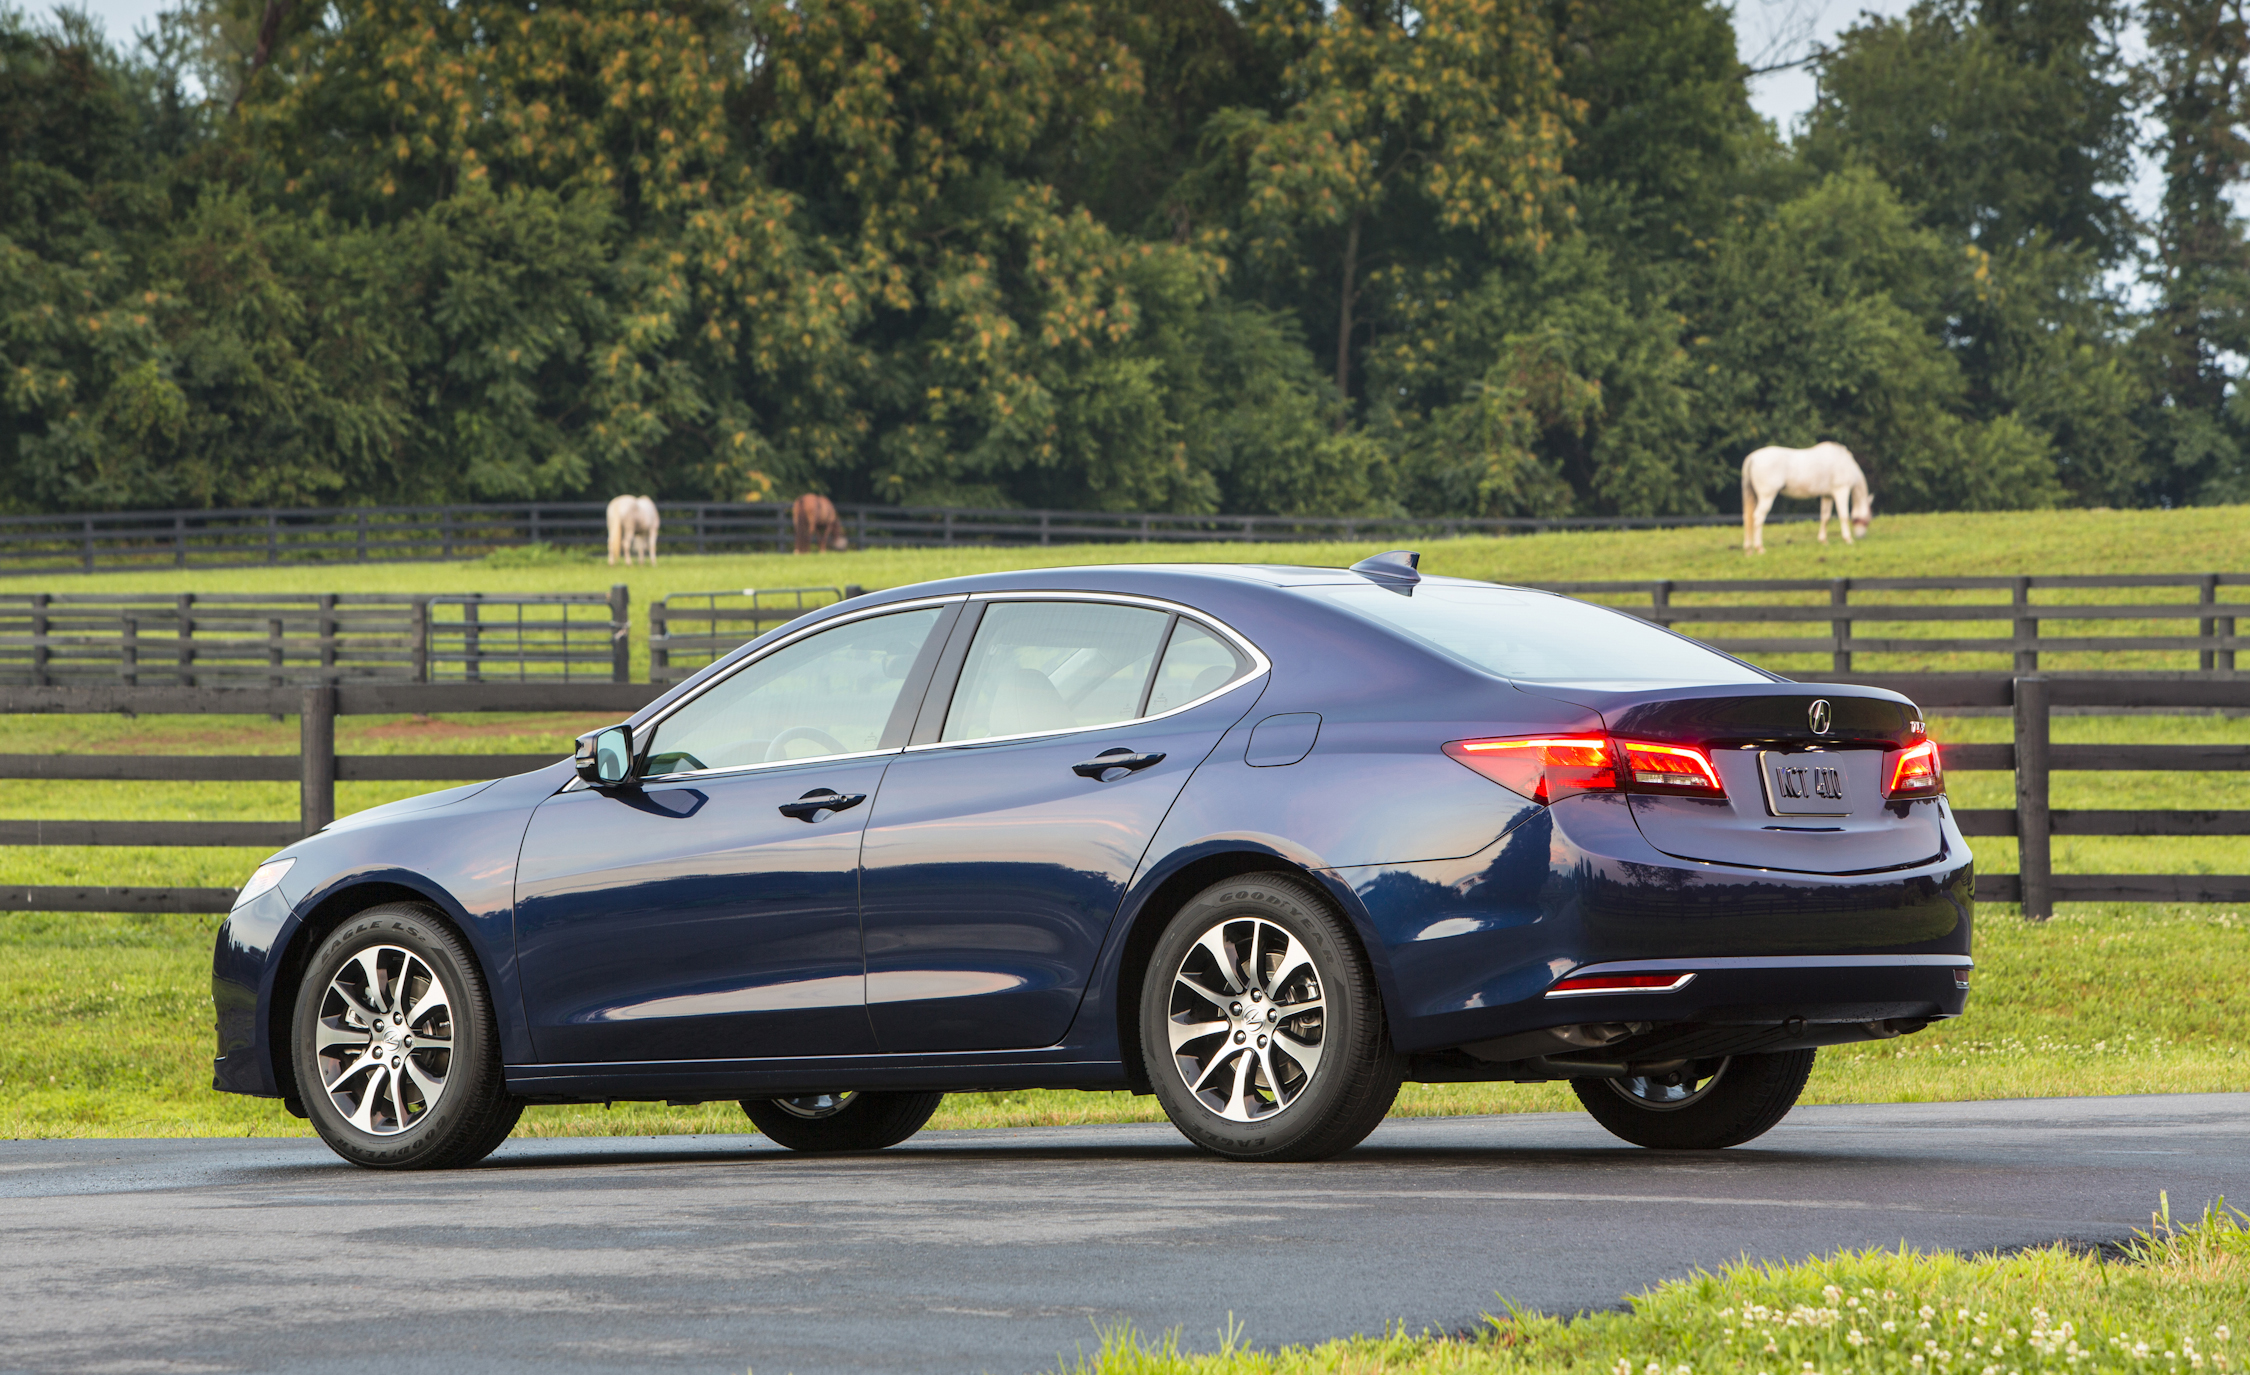 2015 Acura TLX 2.4L Exterior Left Side and Rear